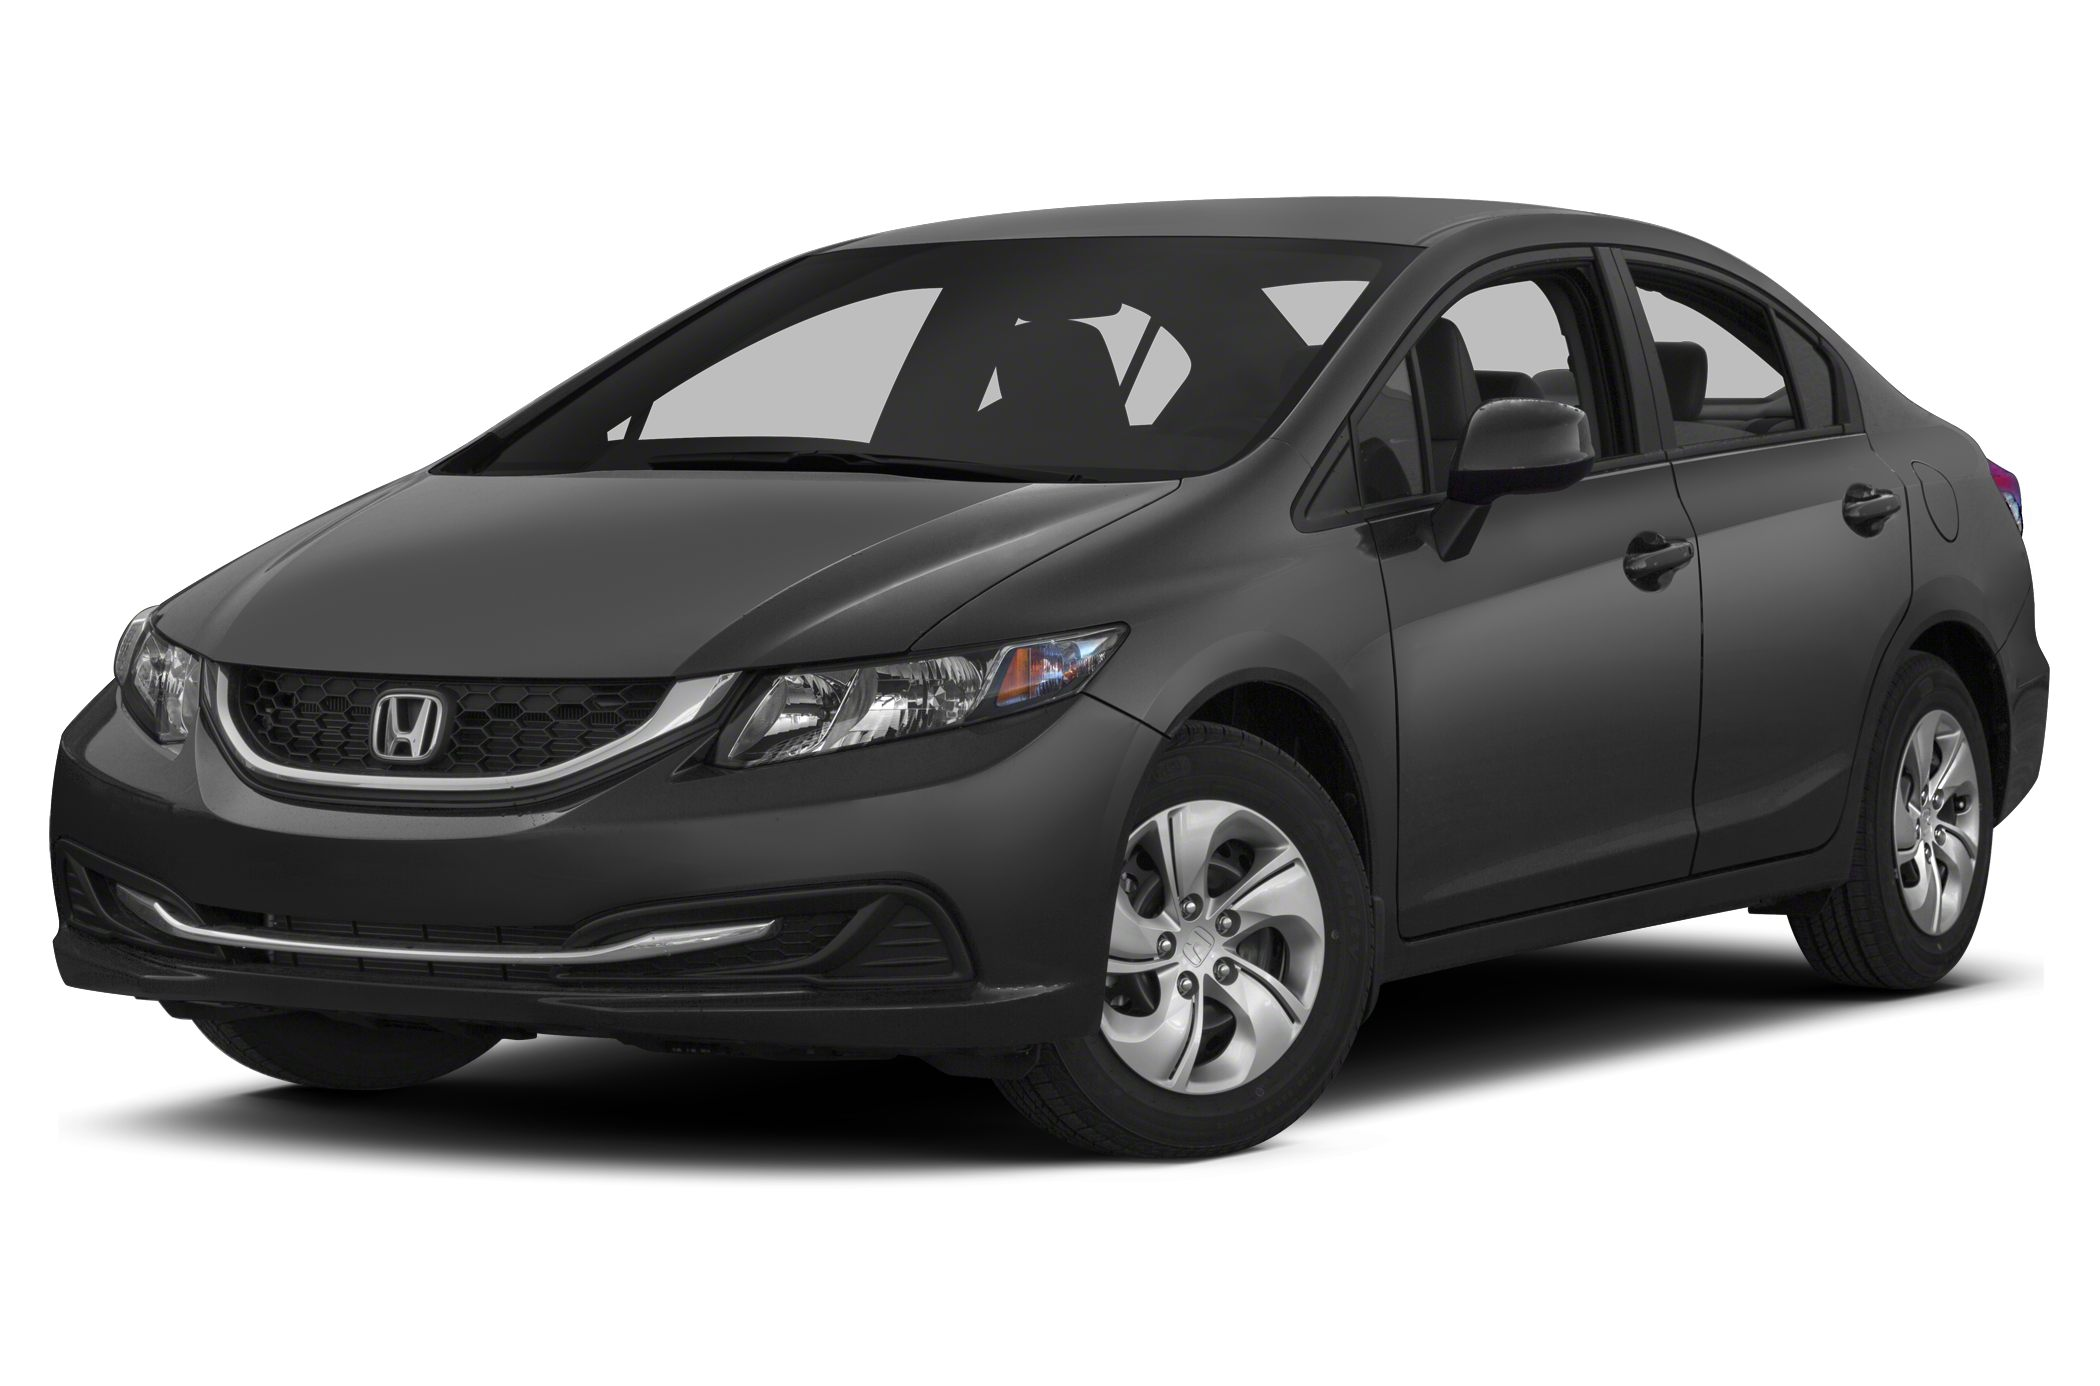 2013 Honda Civic EX Lifetime Engine Warranty at NO CHARGE on all pre-owned vehicles Courtesy Auto